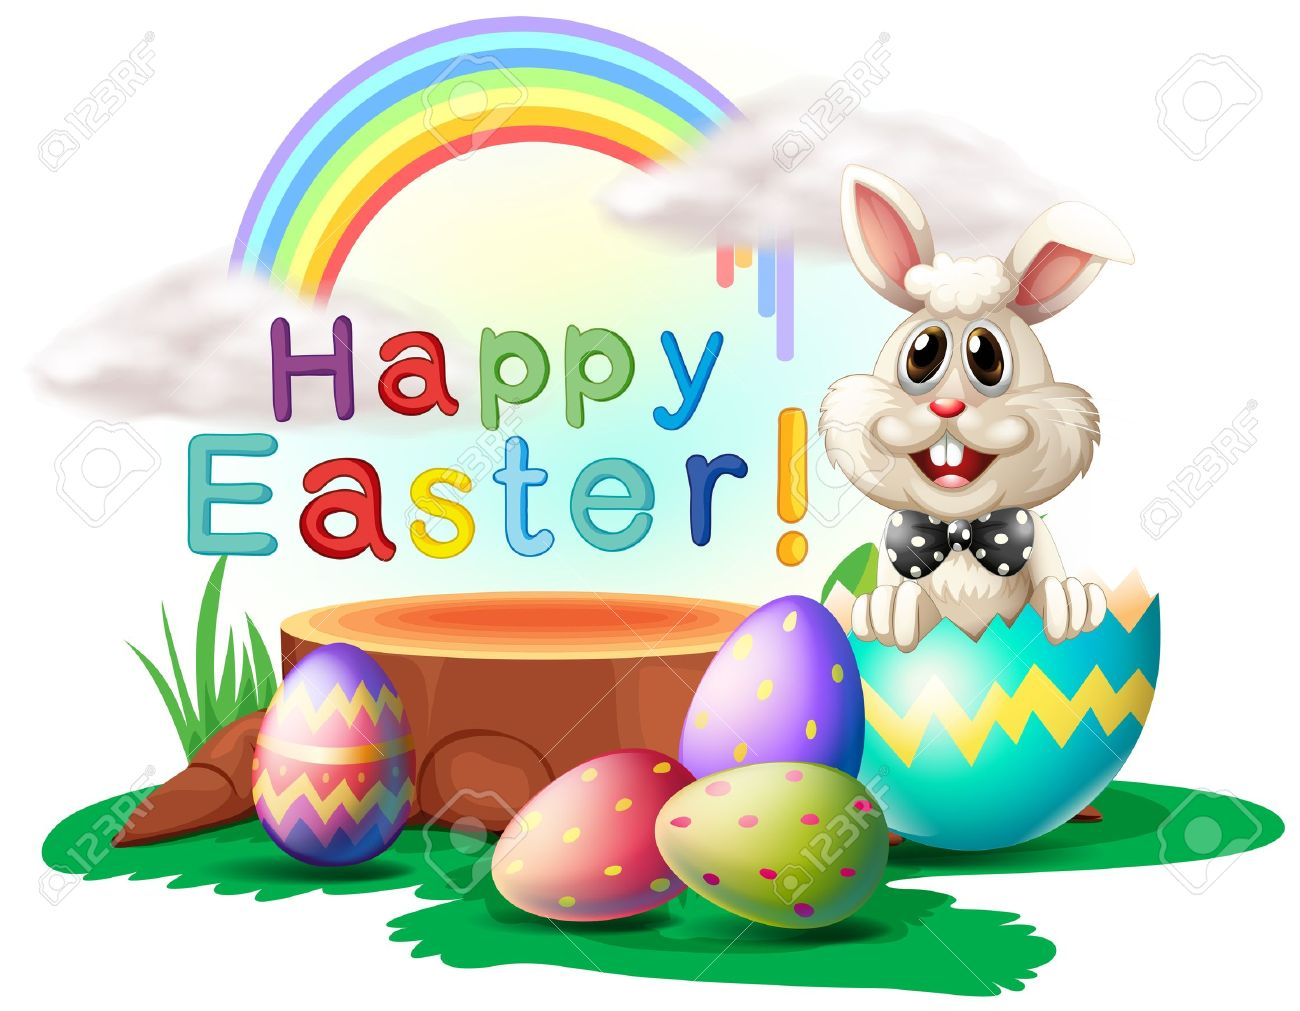 Happy Easter Quotes Greetings 2017 Poems Pictures